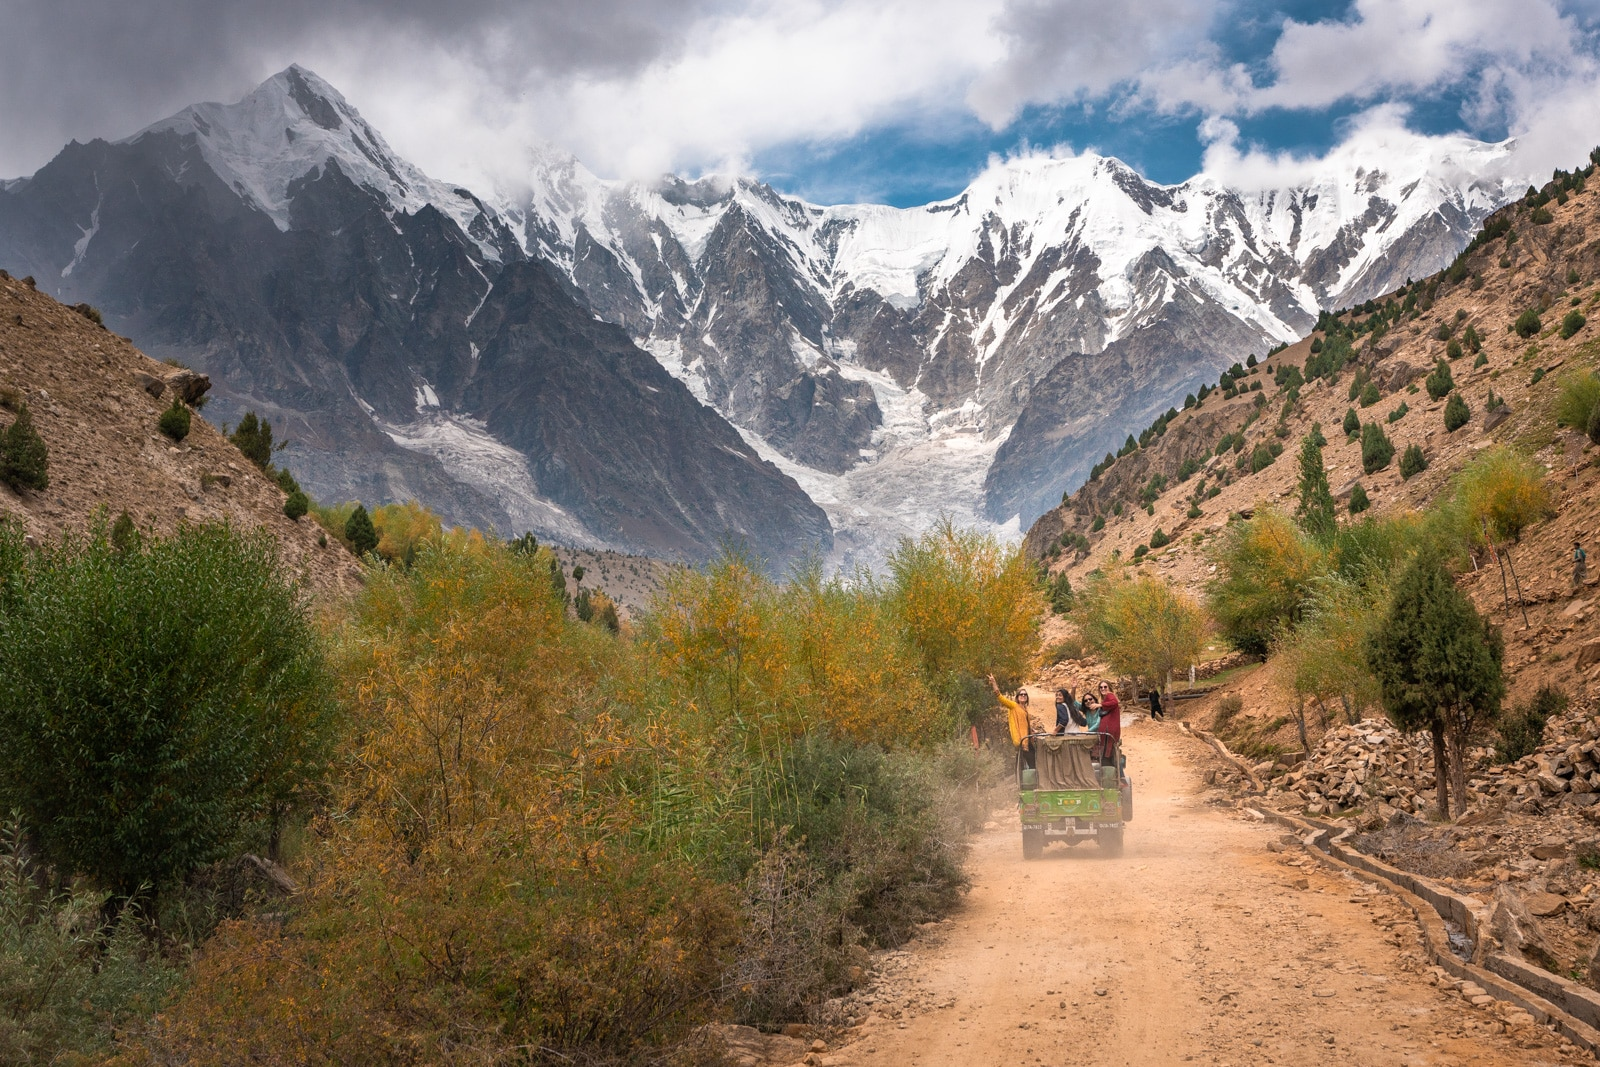 Girls riding in a jeep to Astore and Nanga Parbat on a women's tour of Pakistan